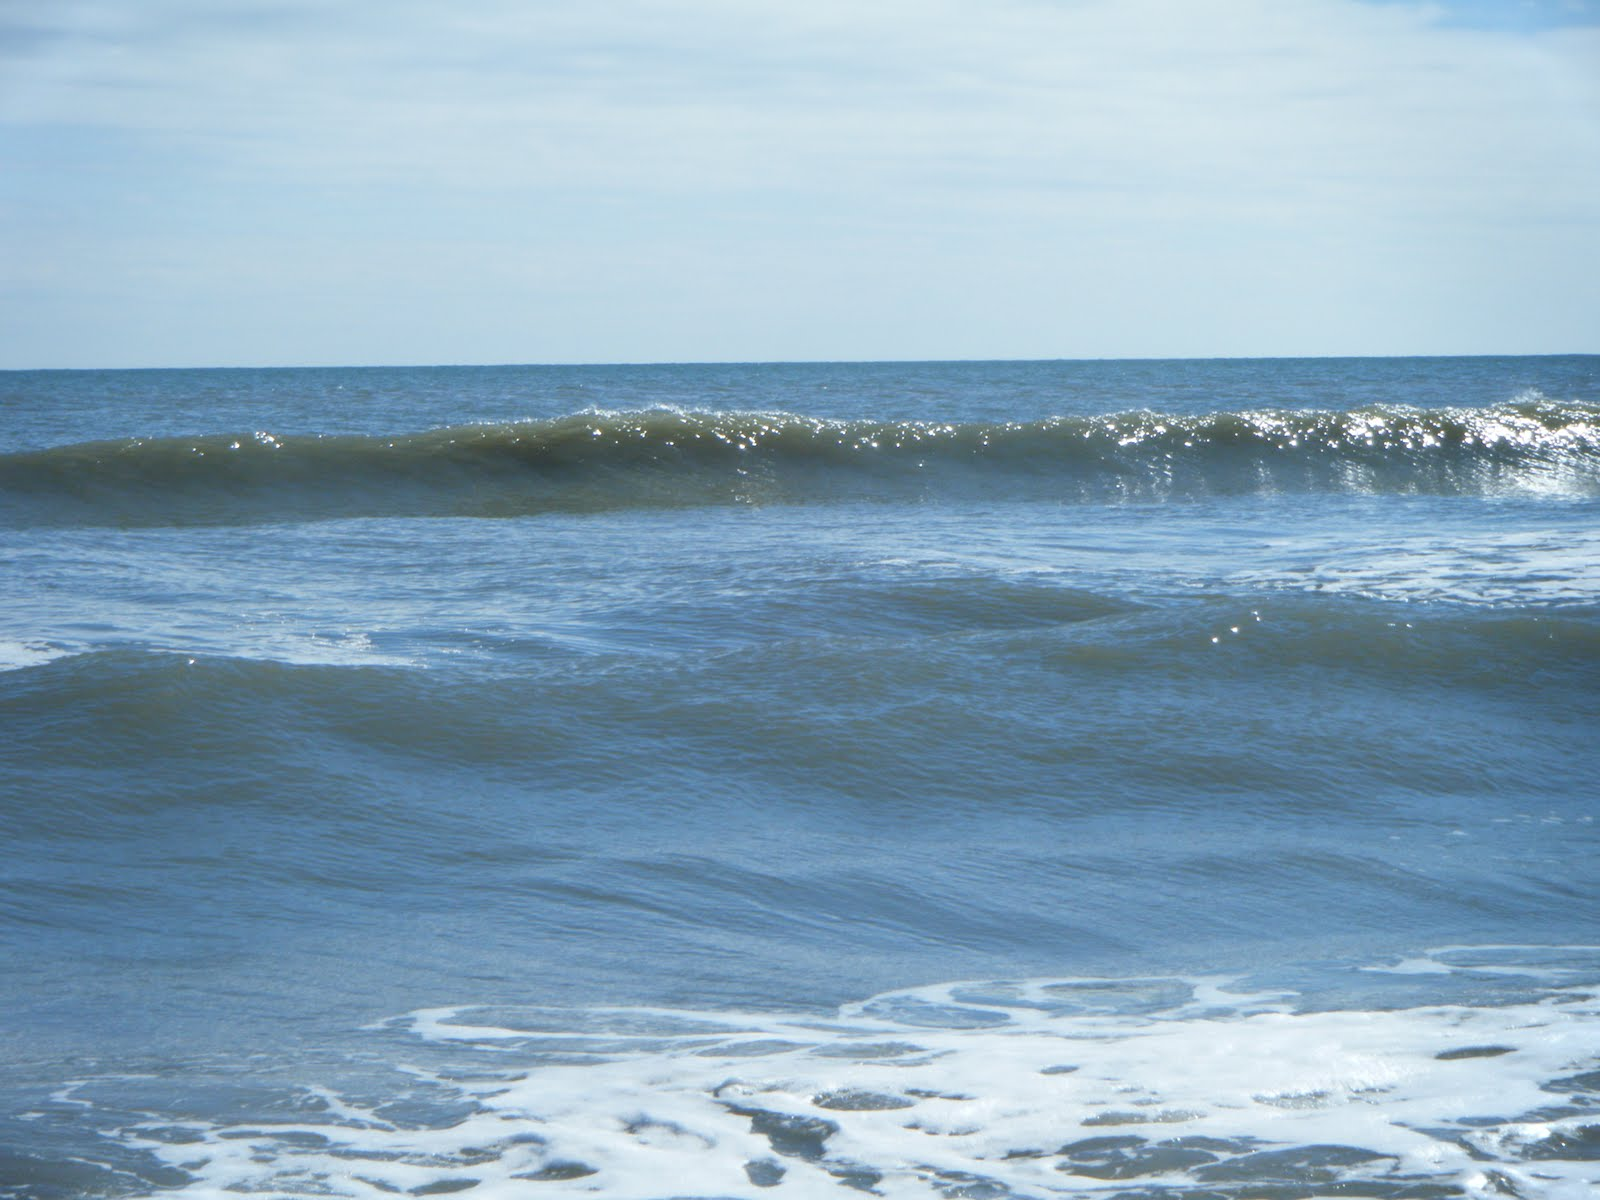 atlantic paddle surfing fun clean 2 ft waves